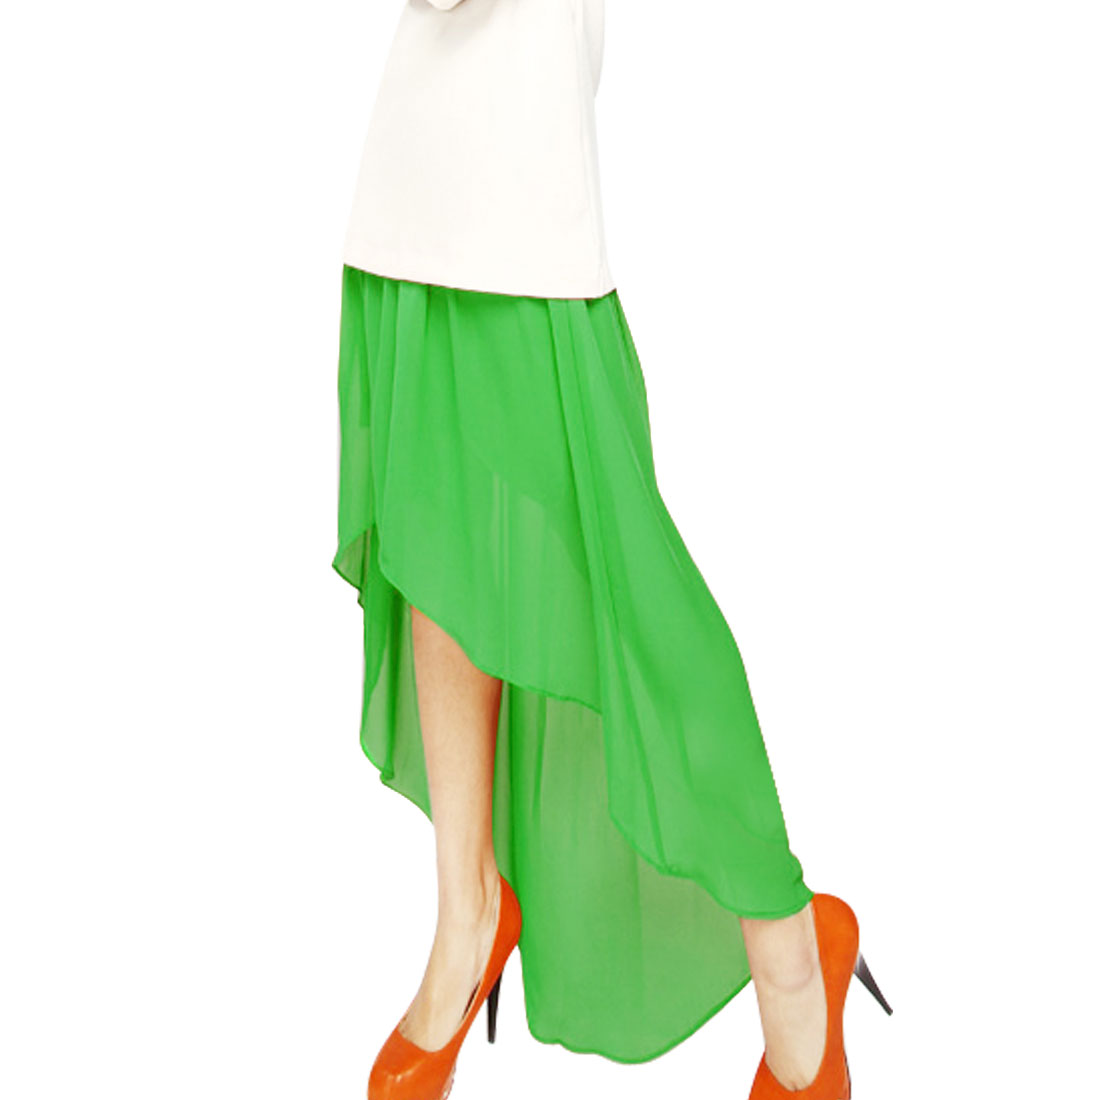 Soft Lining Layer Semi Sheer Green Asymmetrical Skirt XS for Lady